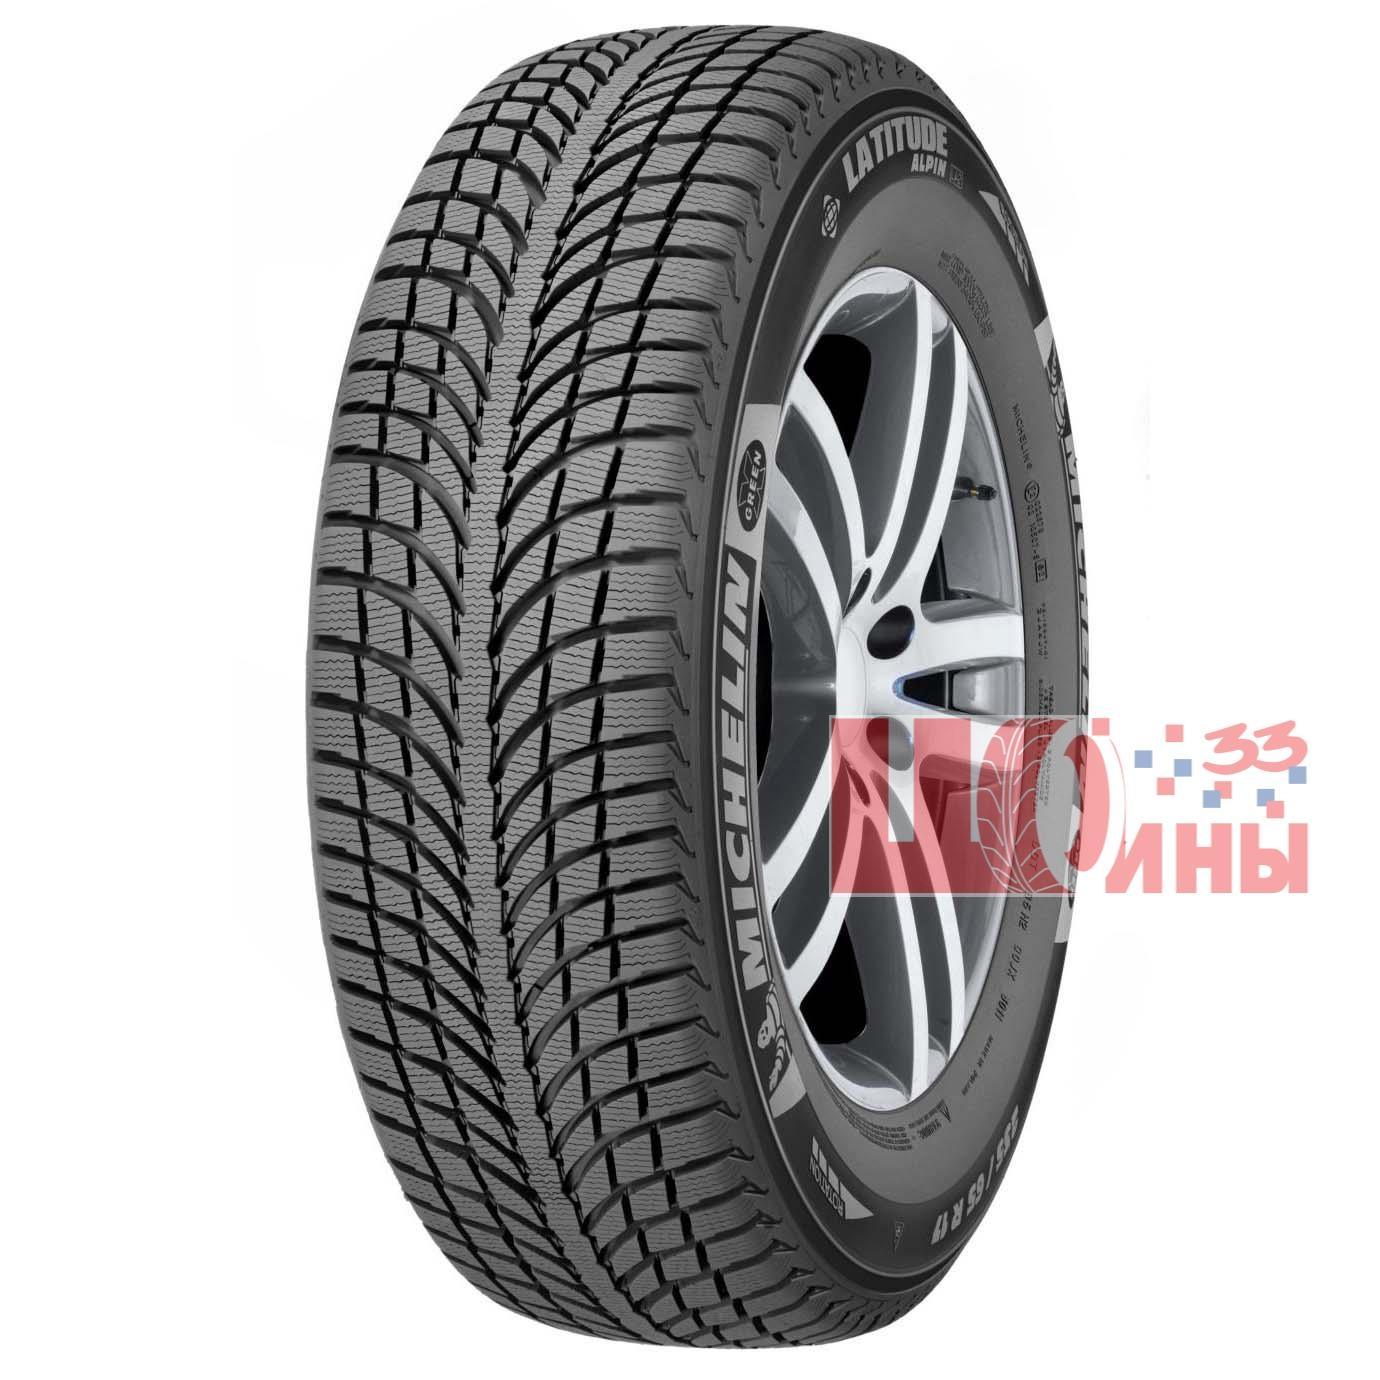 Б/У 275/45 R21 Зима MICHELIN Latitude Alpin-2 Кат. 3